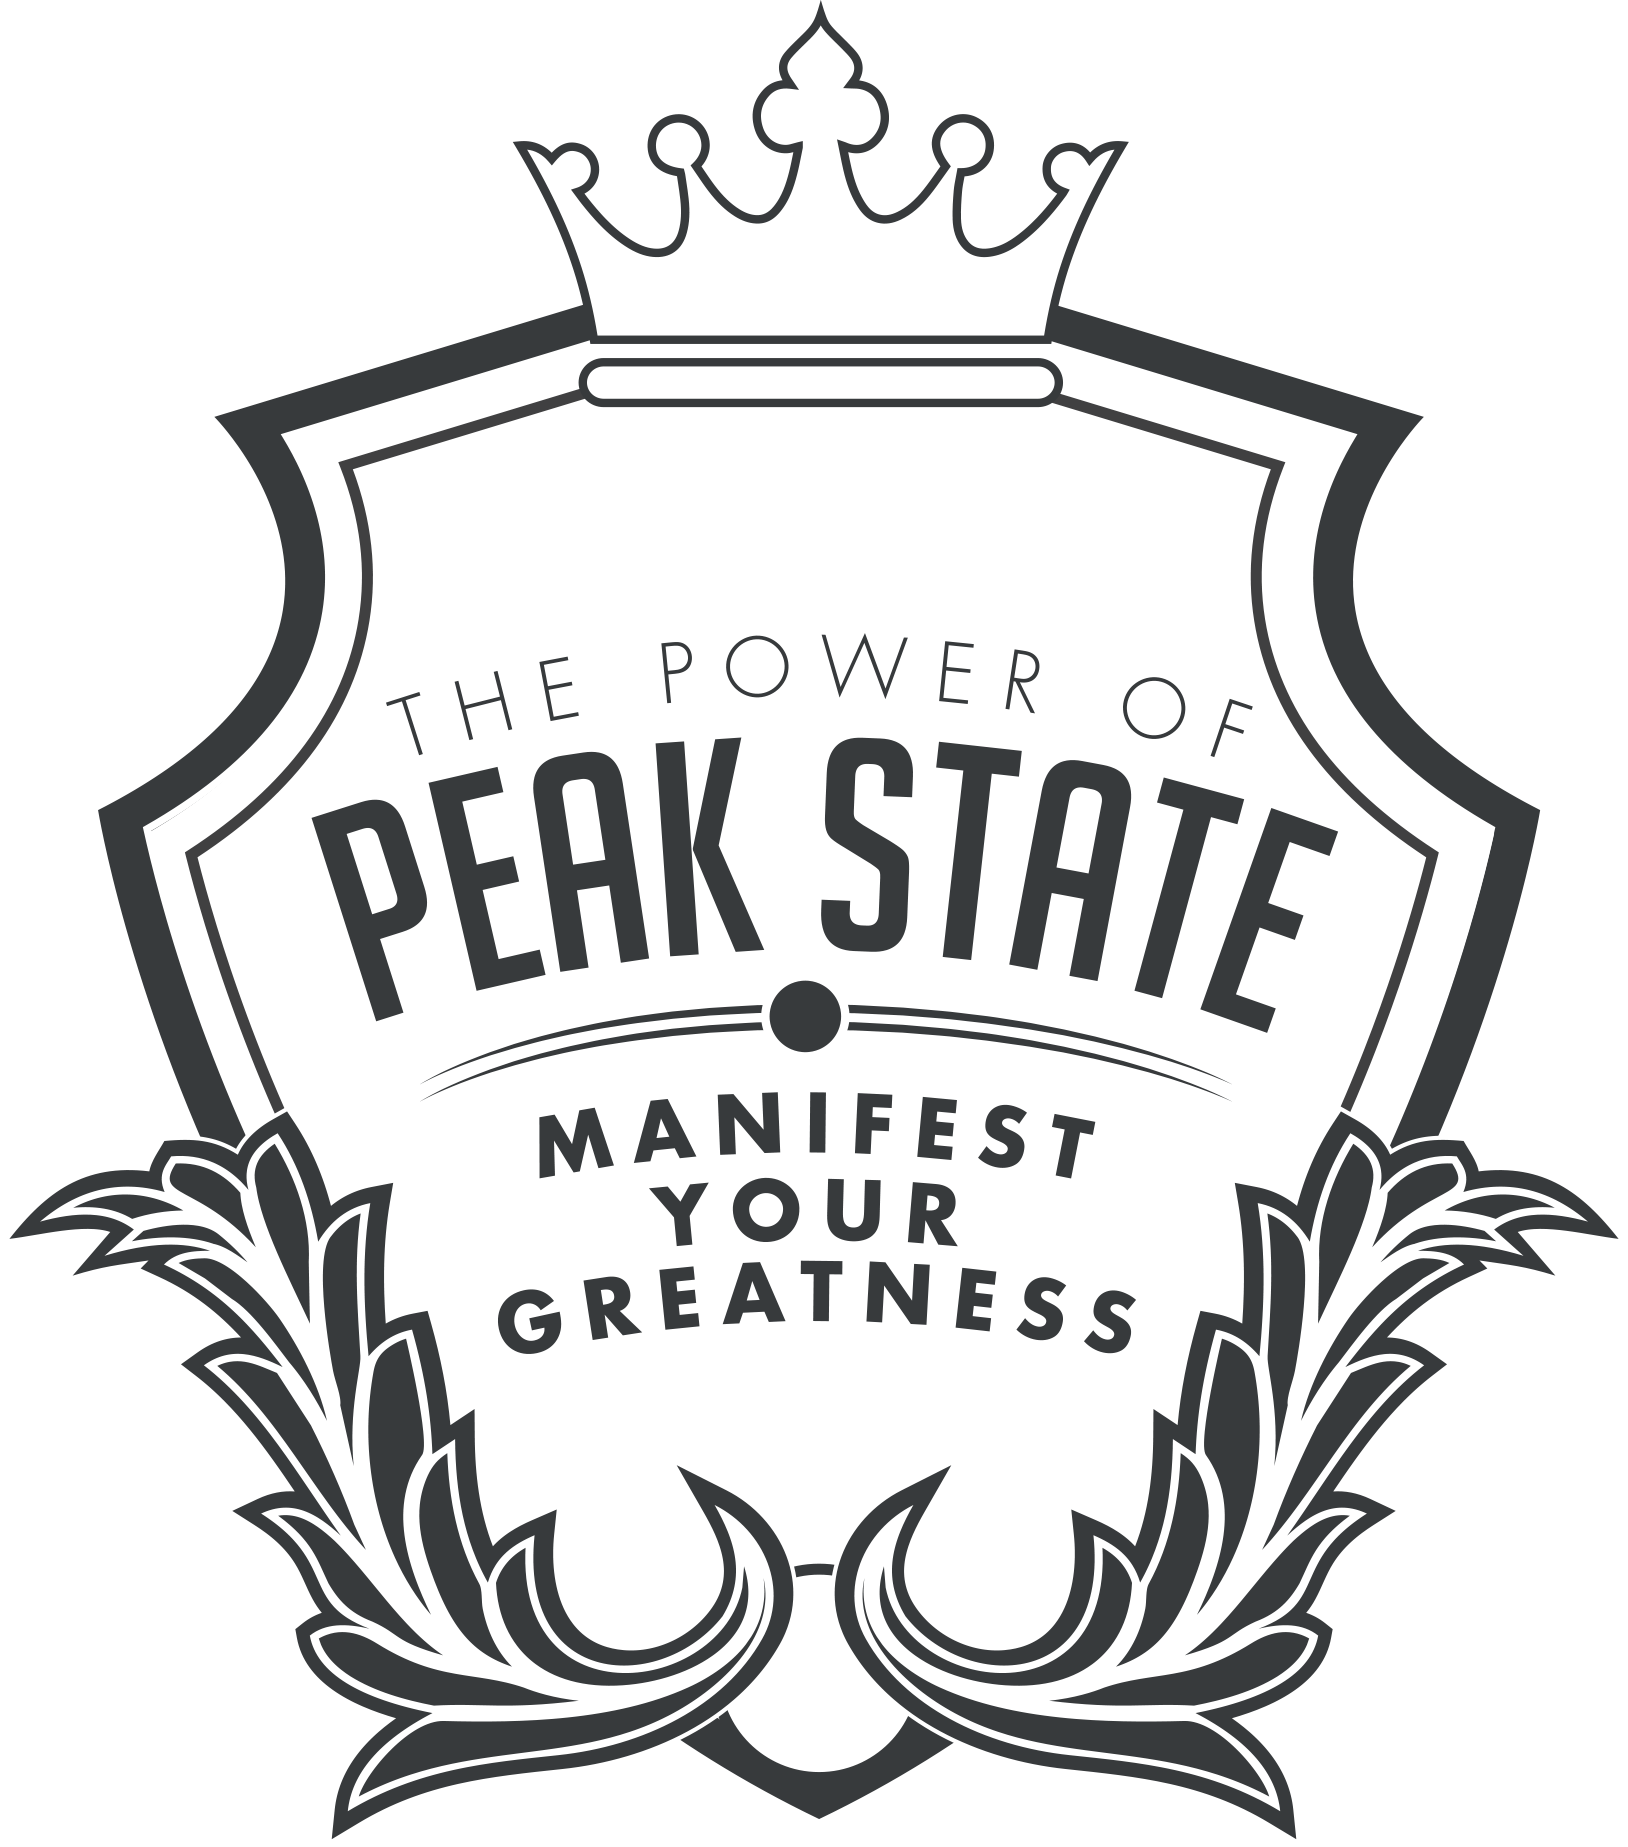 The Power of Peak State